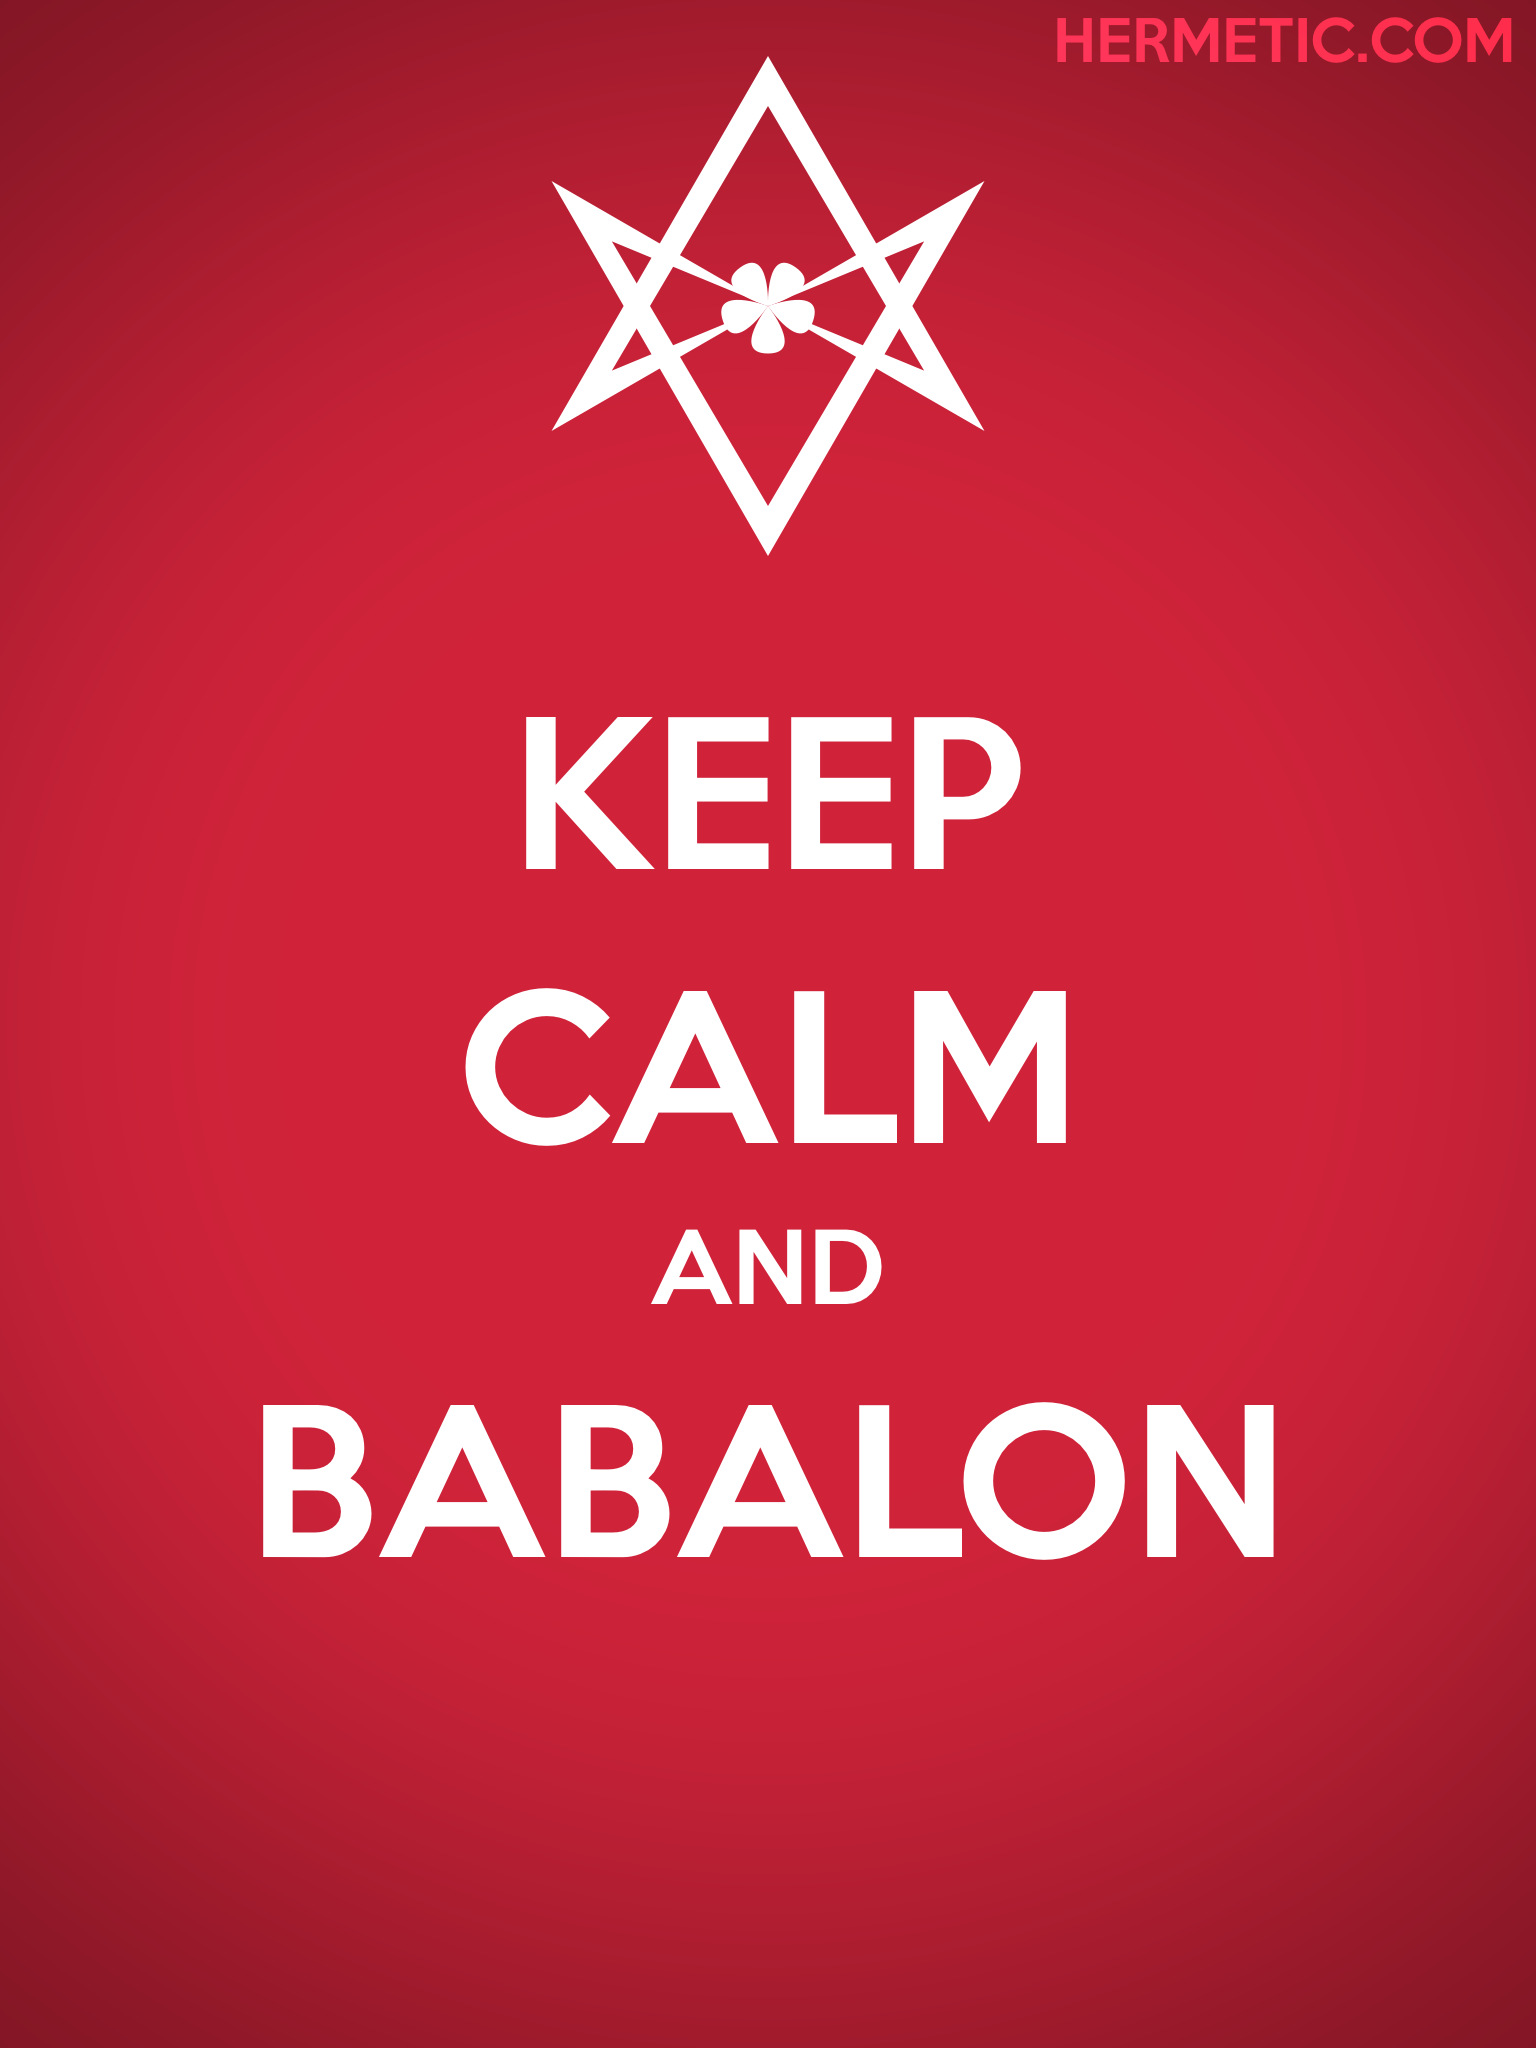 Unicursal KEEP CALM AND BABALON Propaganda Poster from Hermetic Library Office of the Ministry of Information